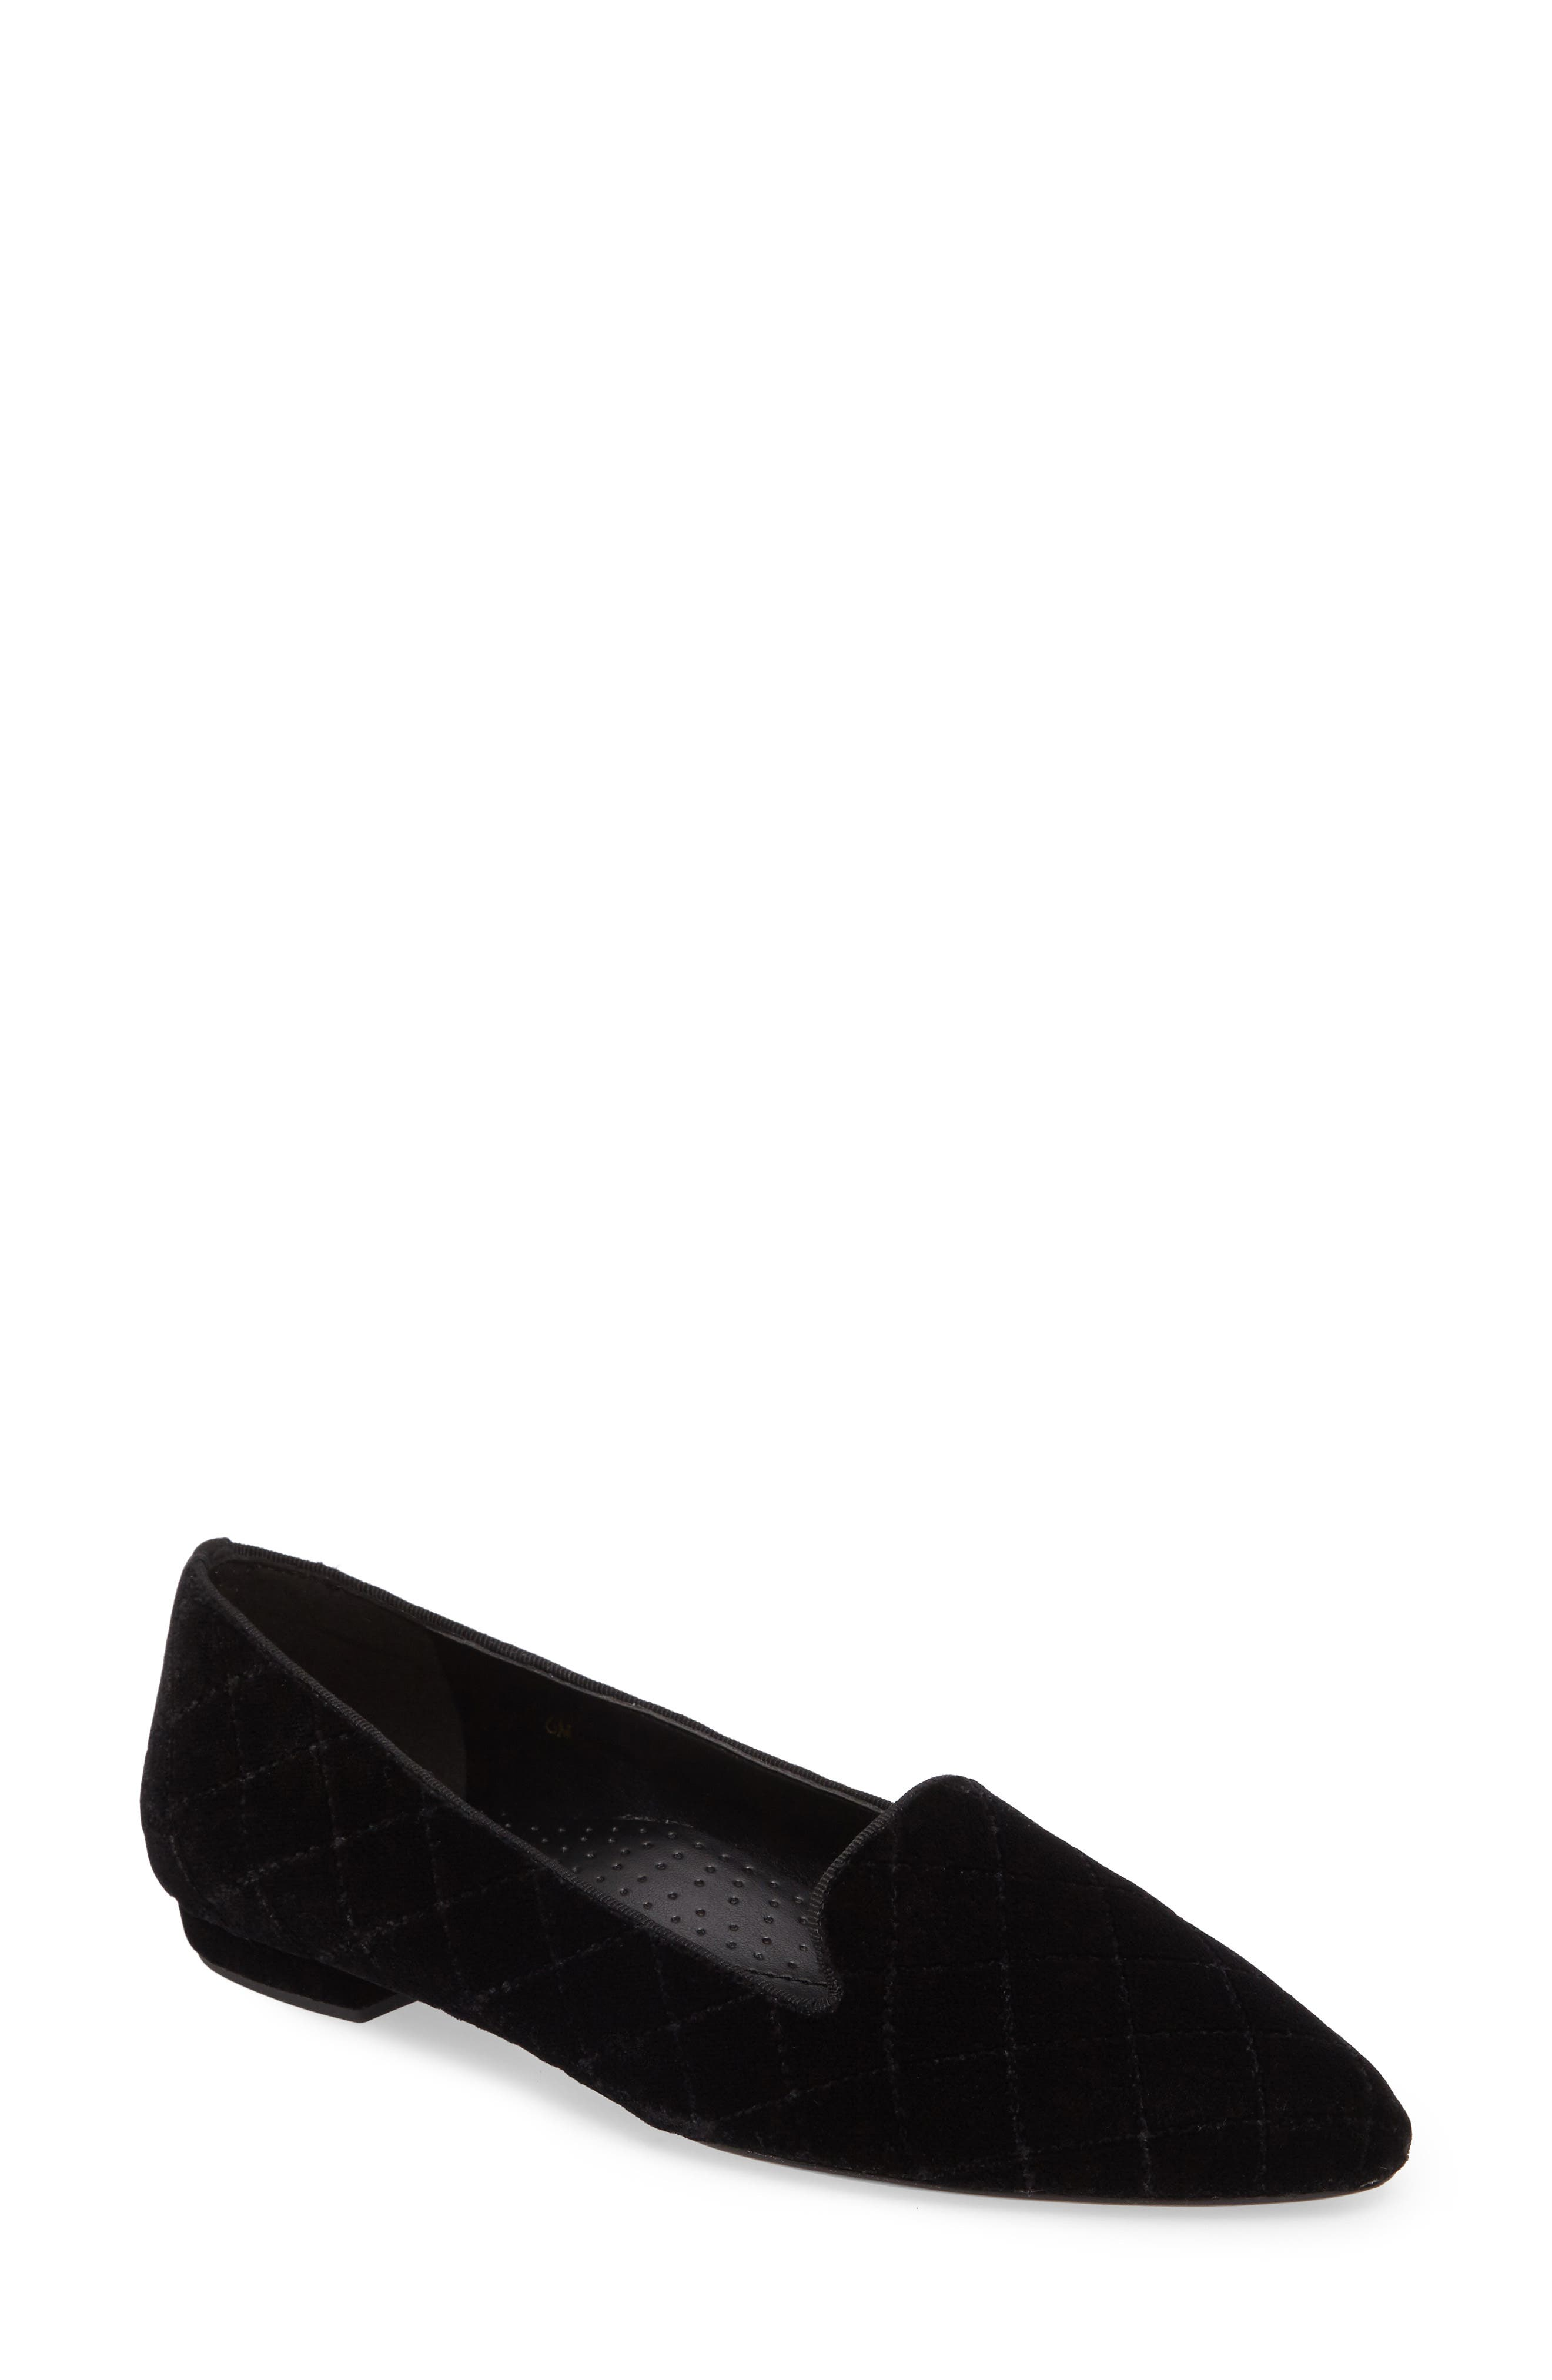 Gannie Diamond Pattern Loafer,                             Main thumbnail 1, color,